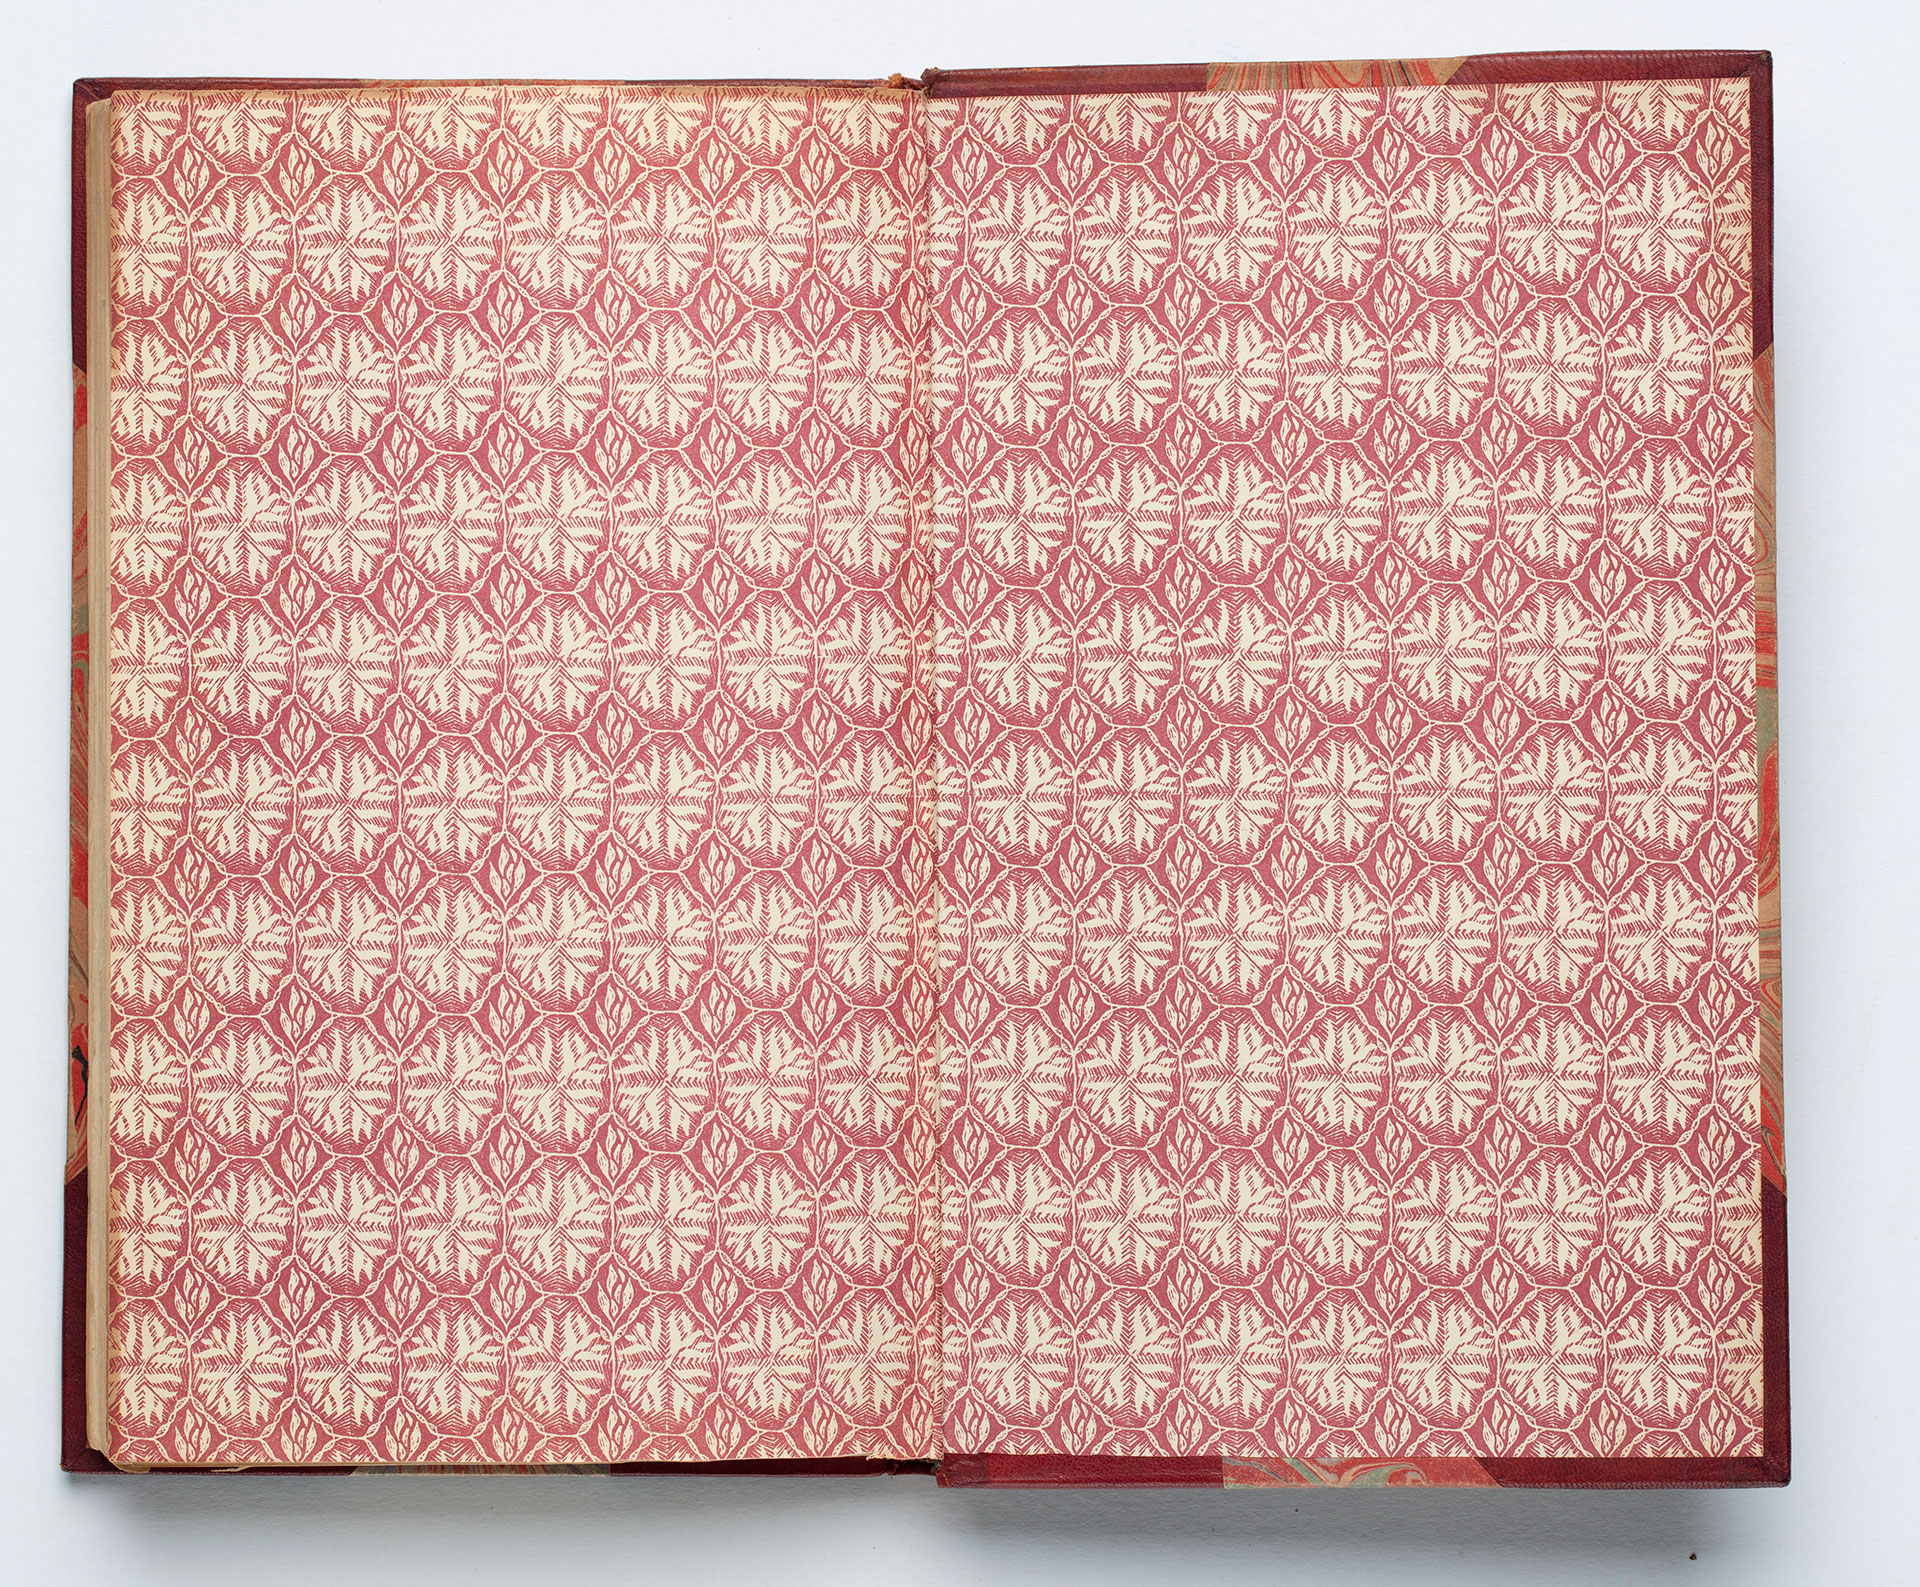 Endpapers with a repeating red floral pattern.